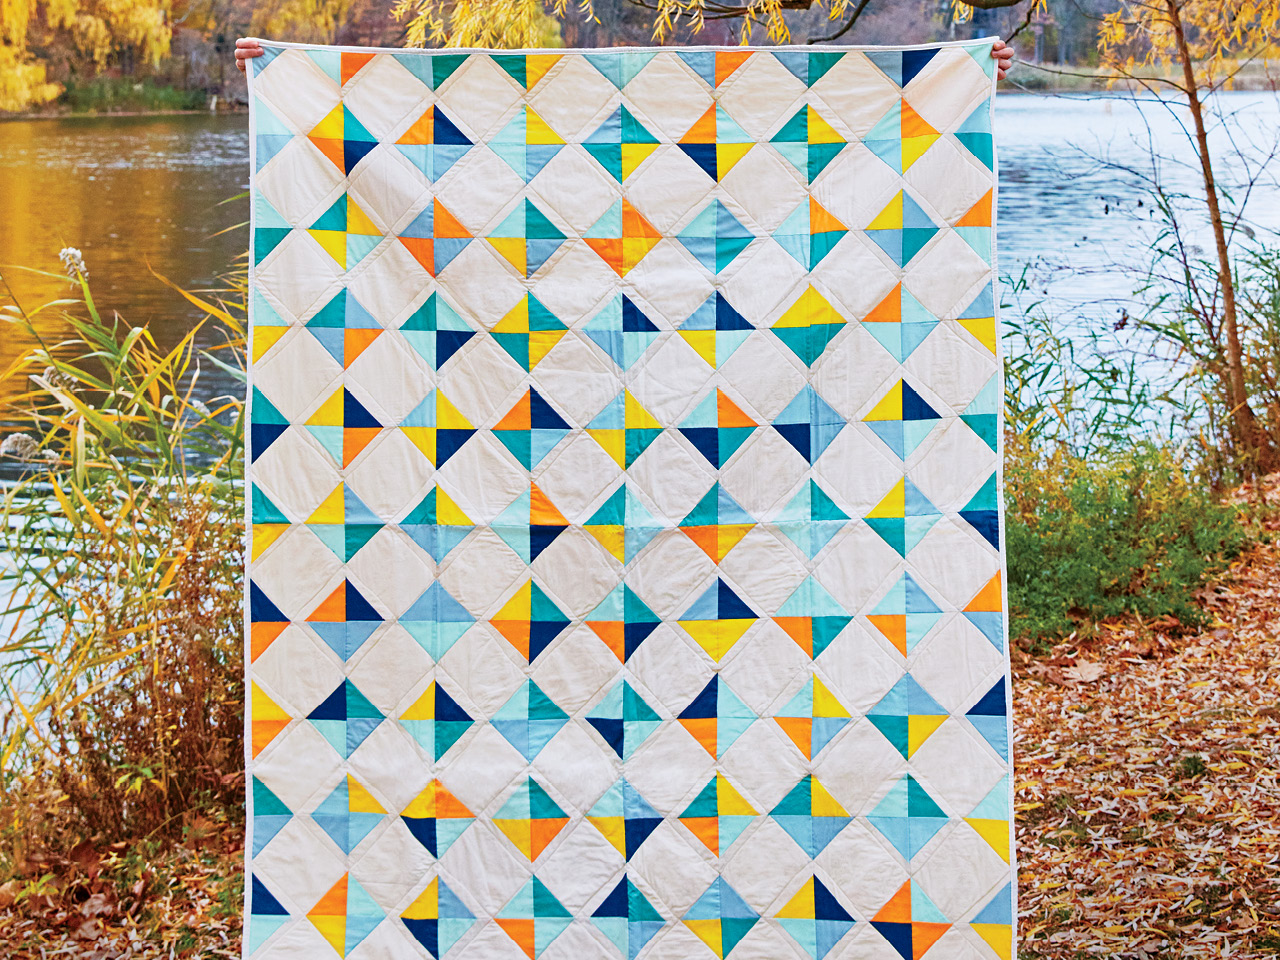 The writer's fourth project, a Tiny Tile quilt. Pattern by Purl Soho.